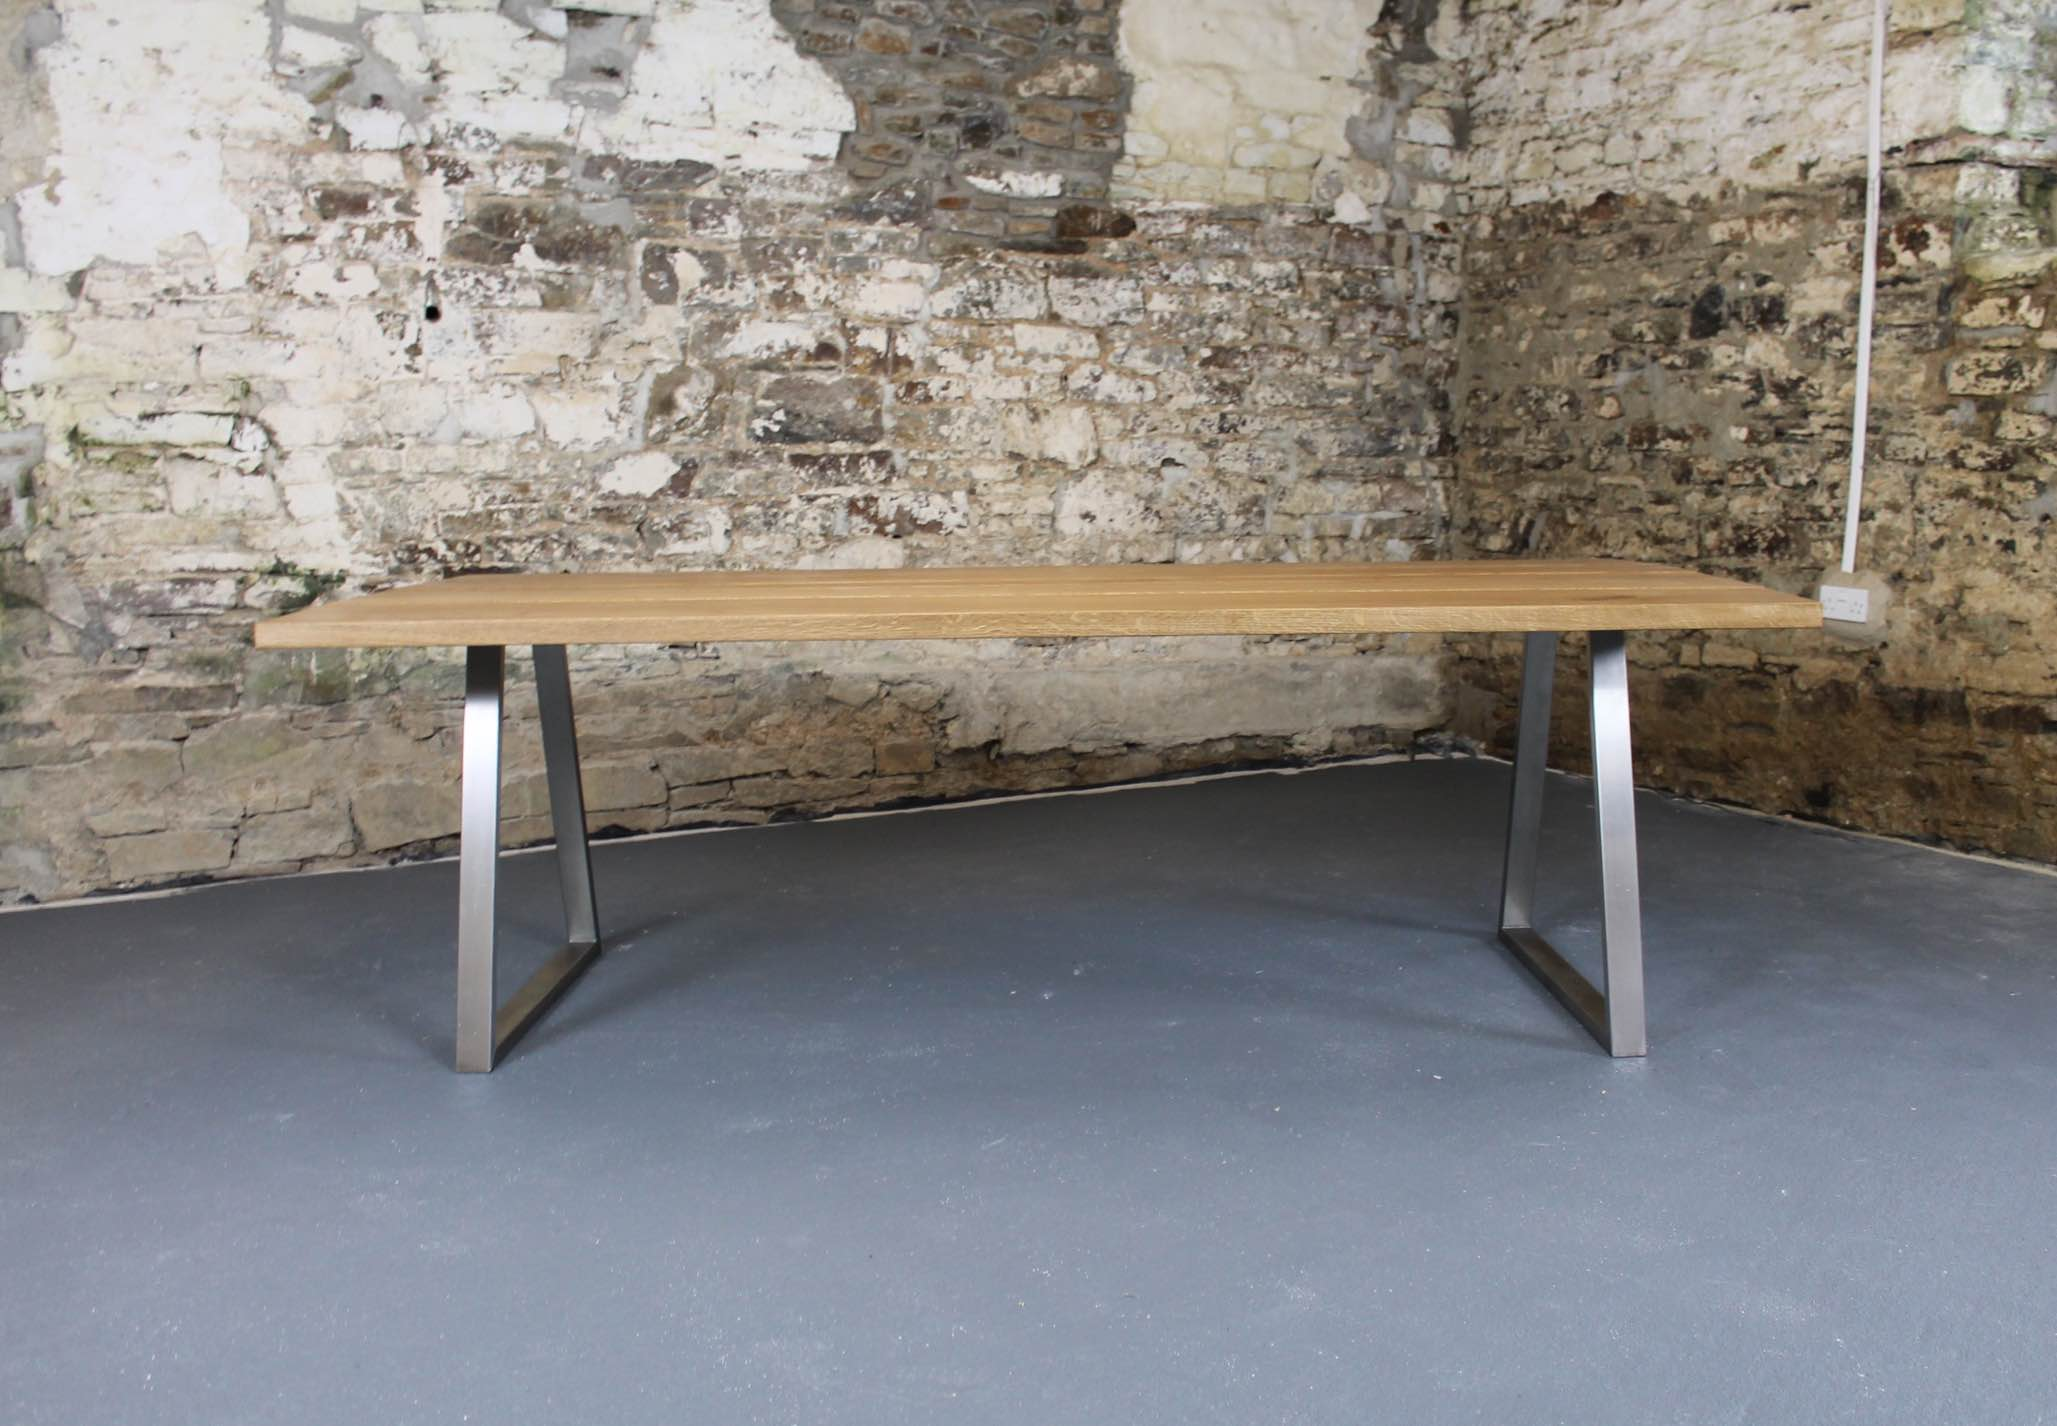 The table pictured is 2400 x 1100mm to comfortably seat 8 people